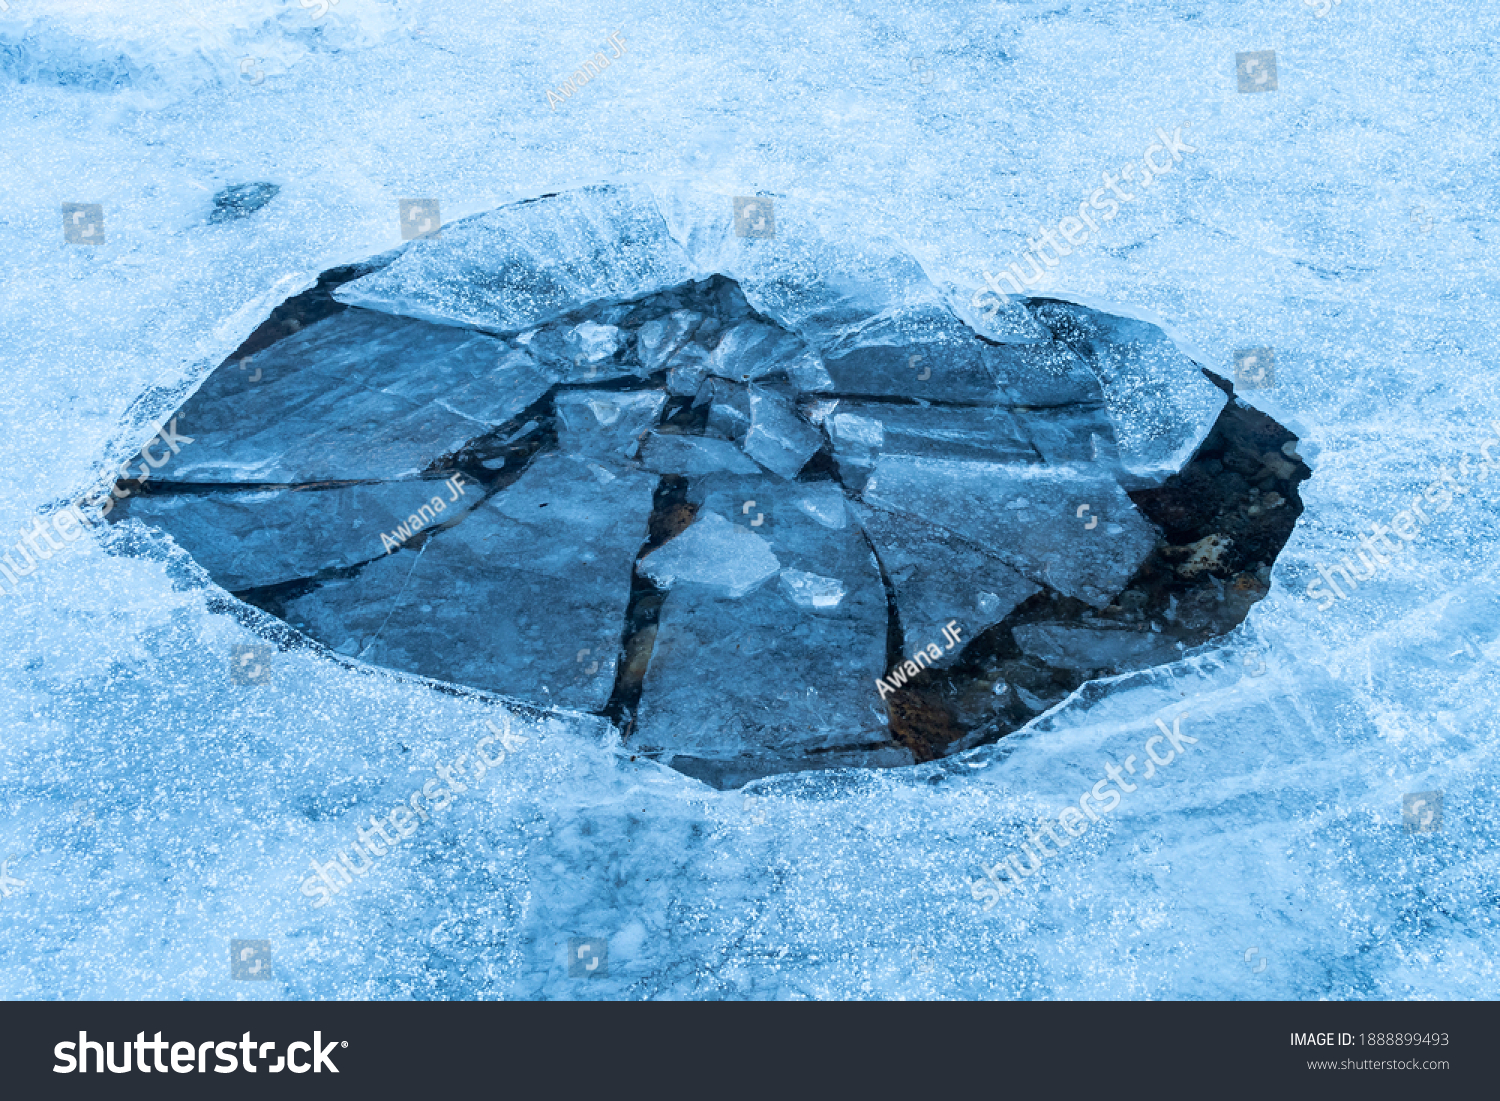 stock-photo-view-of-a-hole-in-a-frozen-l